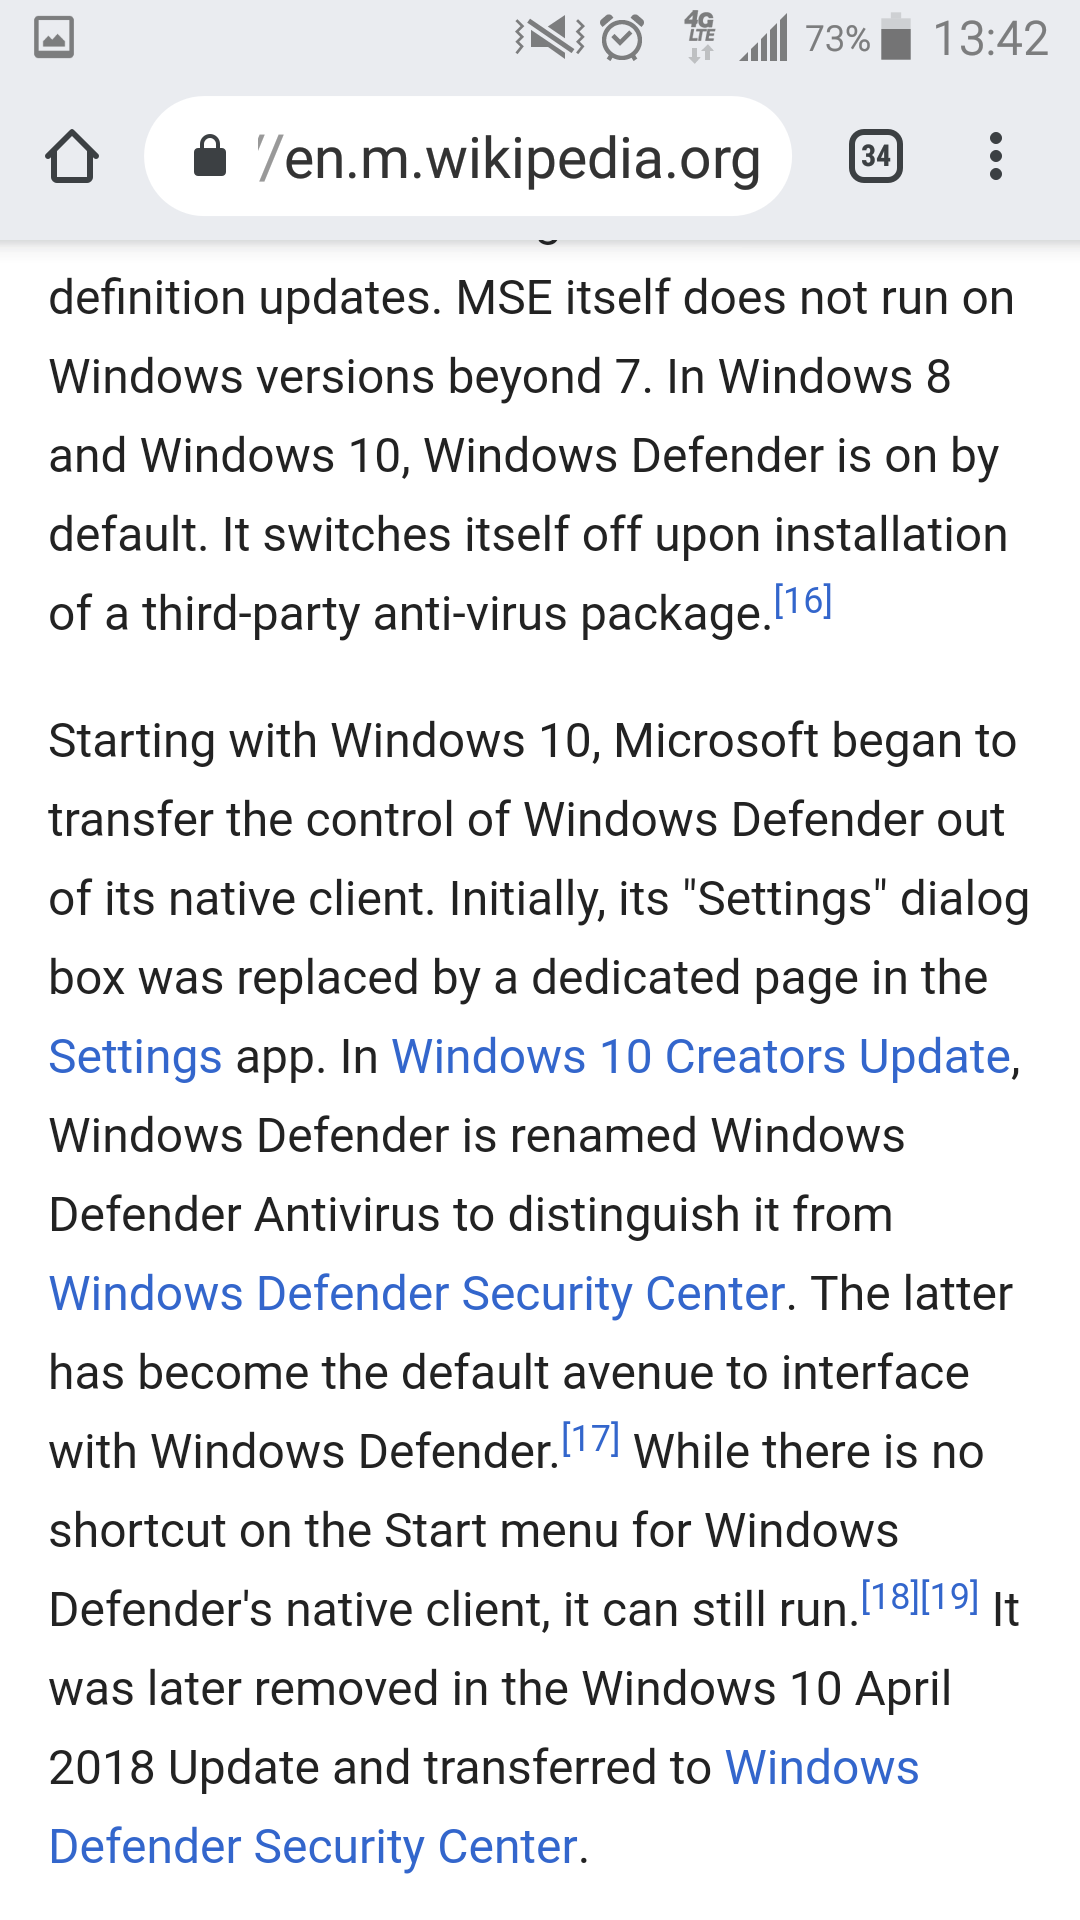 Recent antivirus testing found Windows Defender to be a top